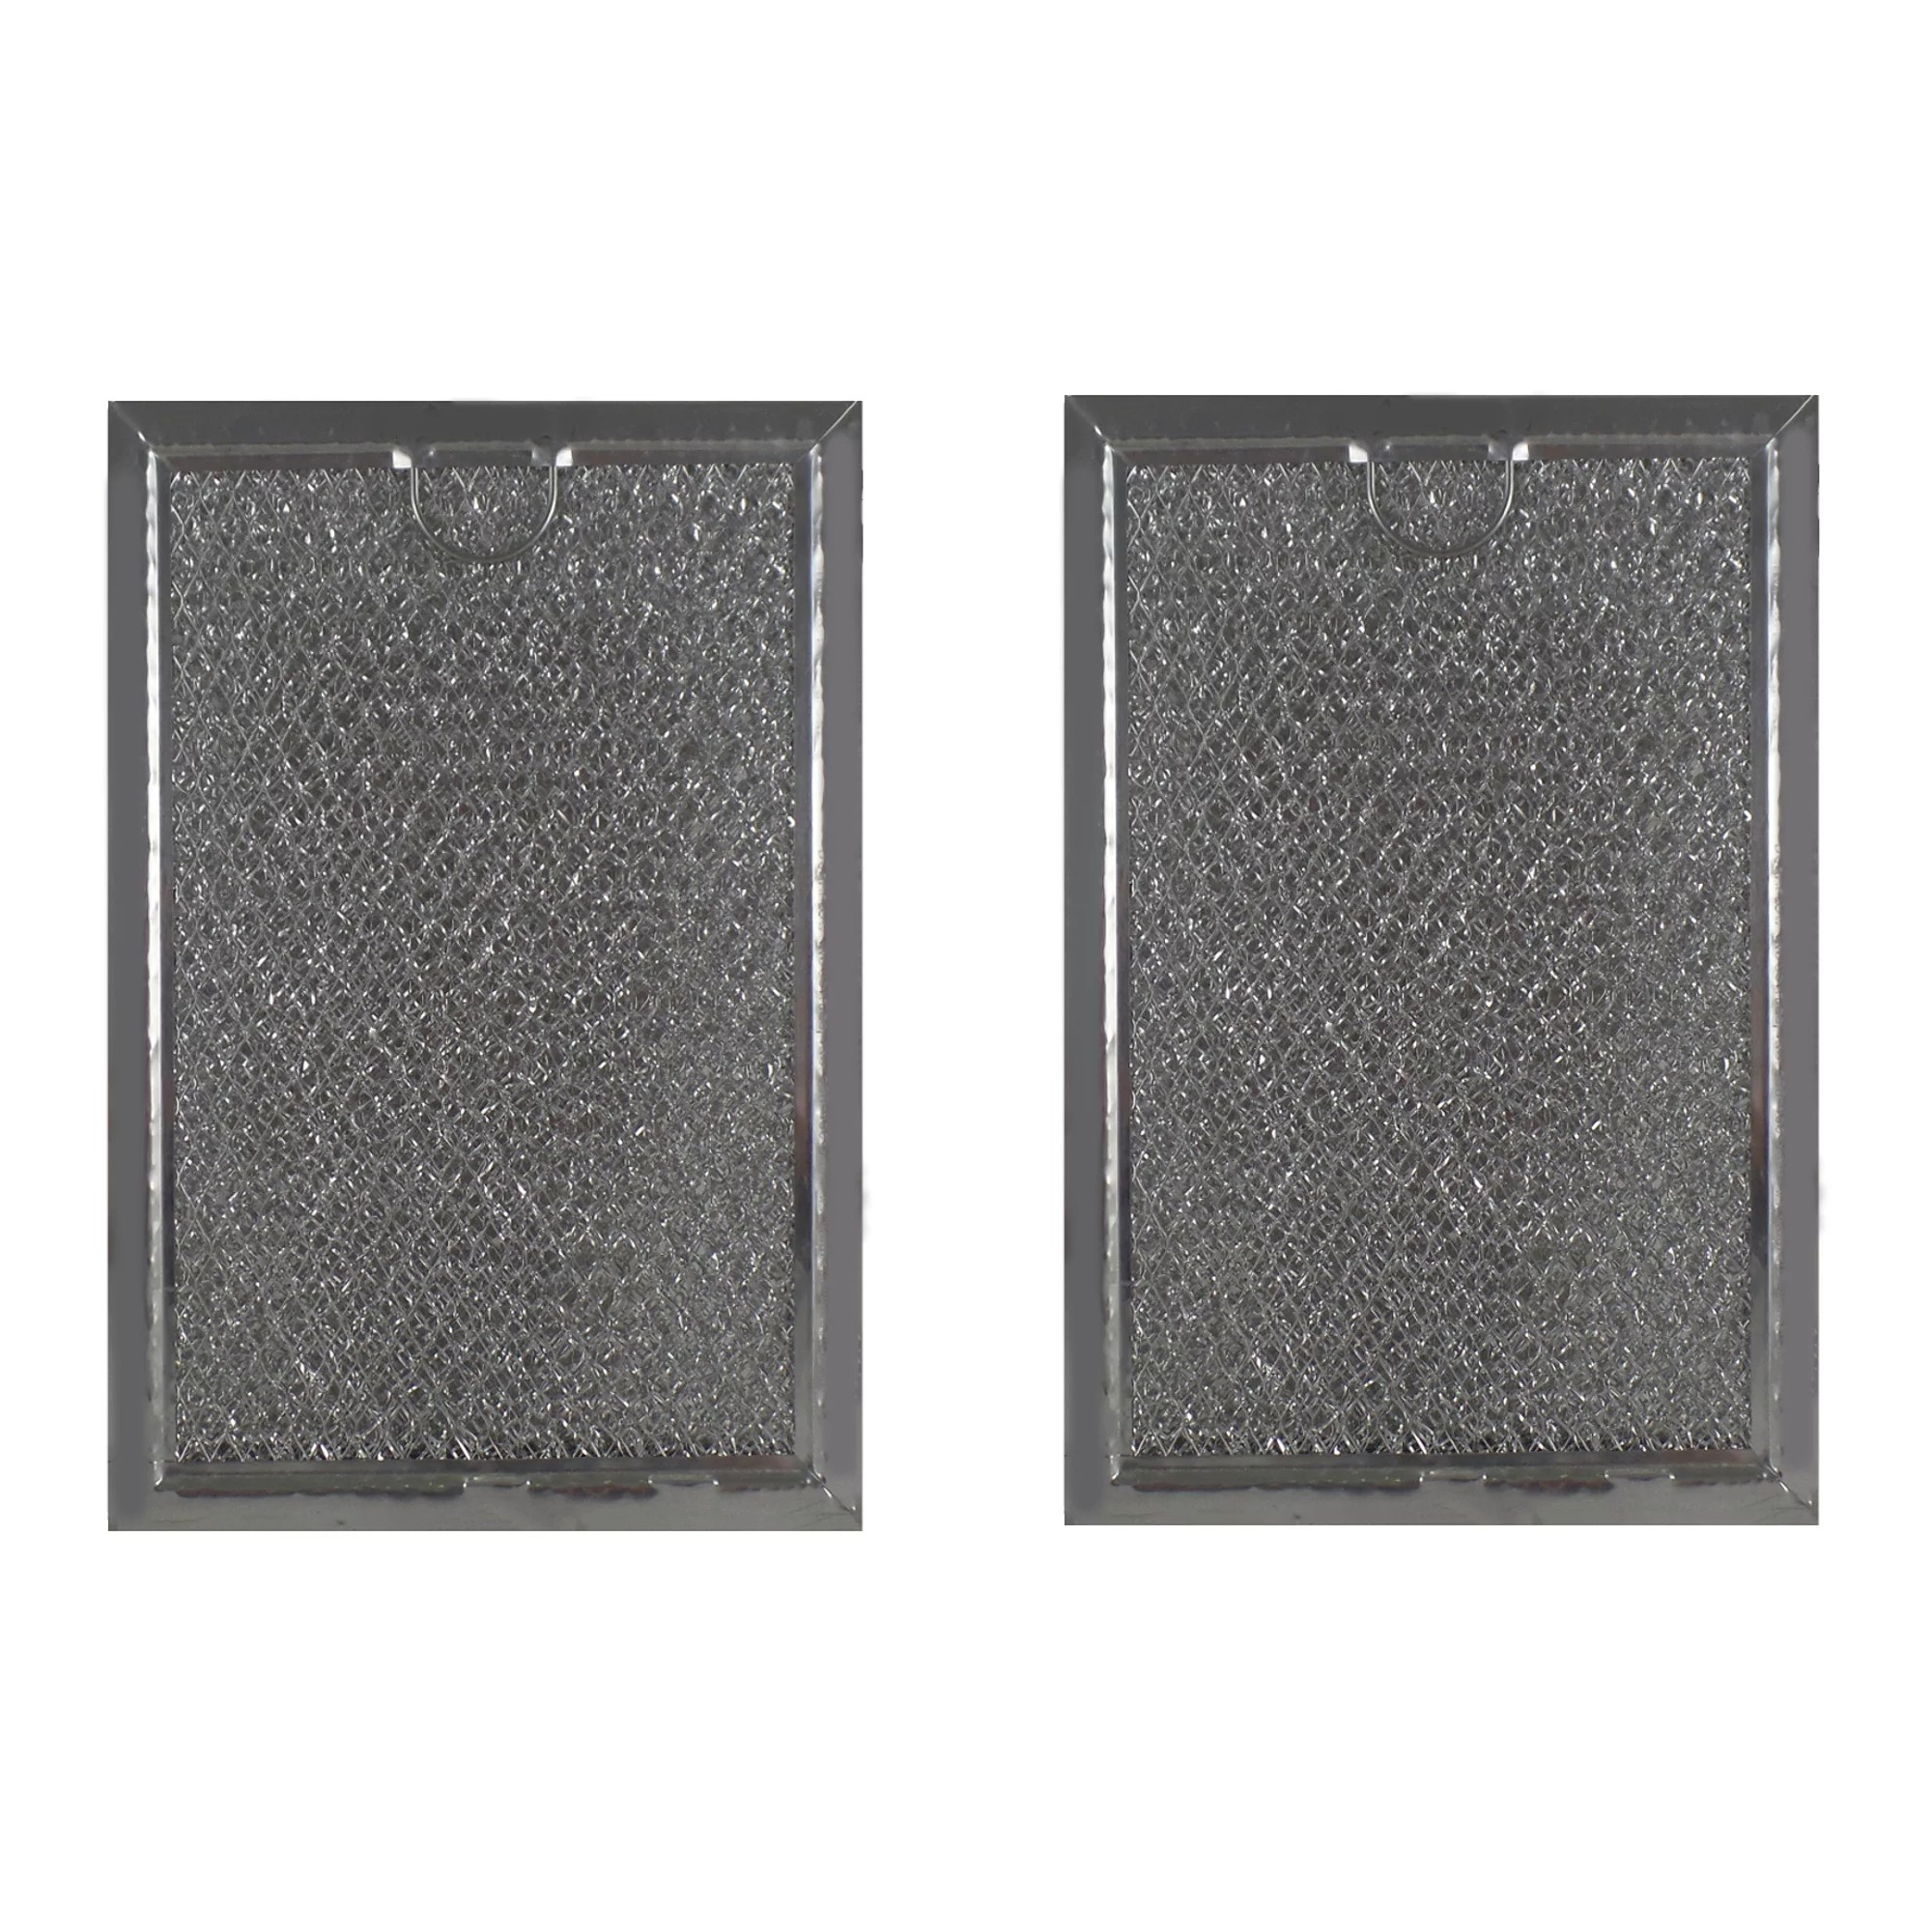 grease filter for samsung microwave 5 1 16 x 7 5 8 2 pack walmart com